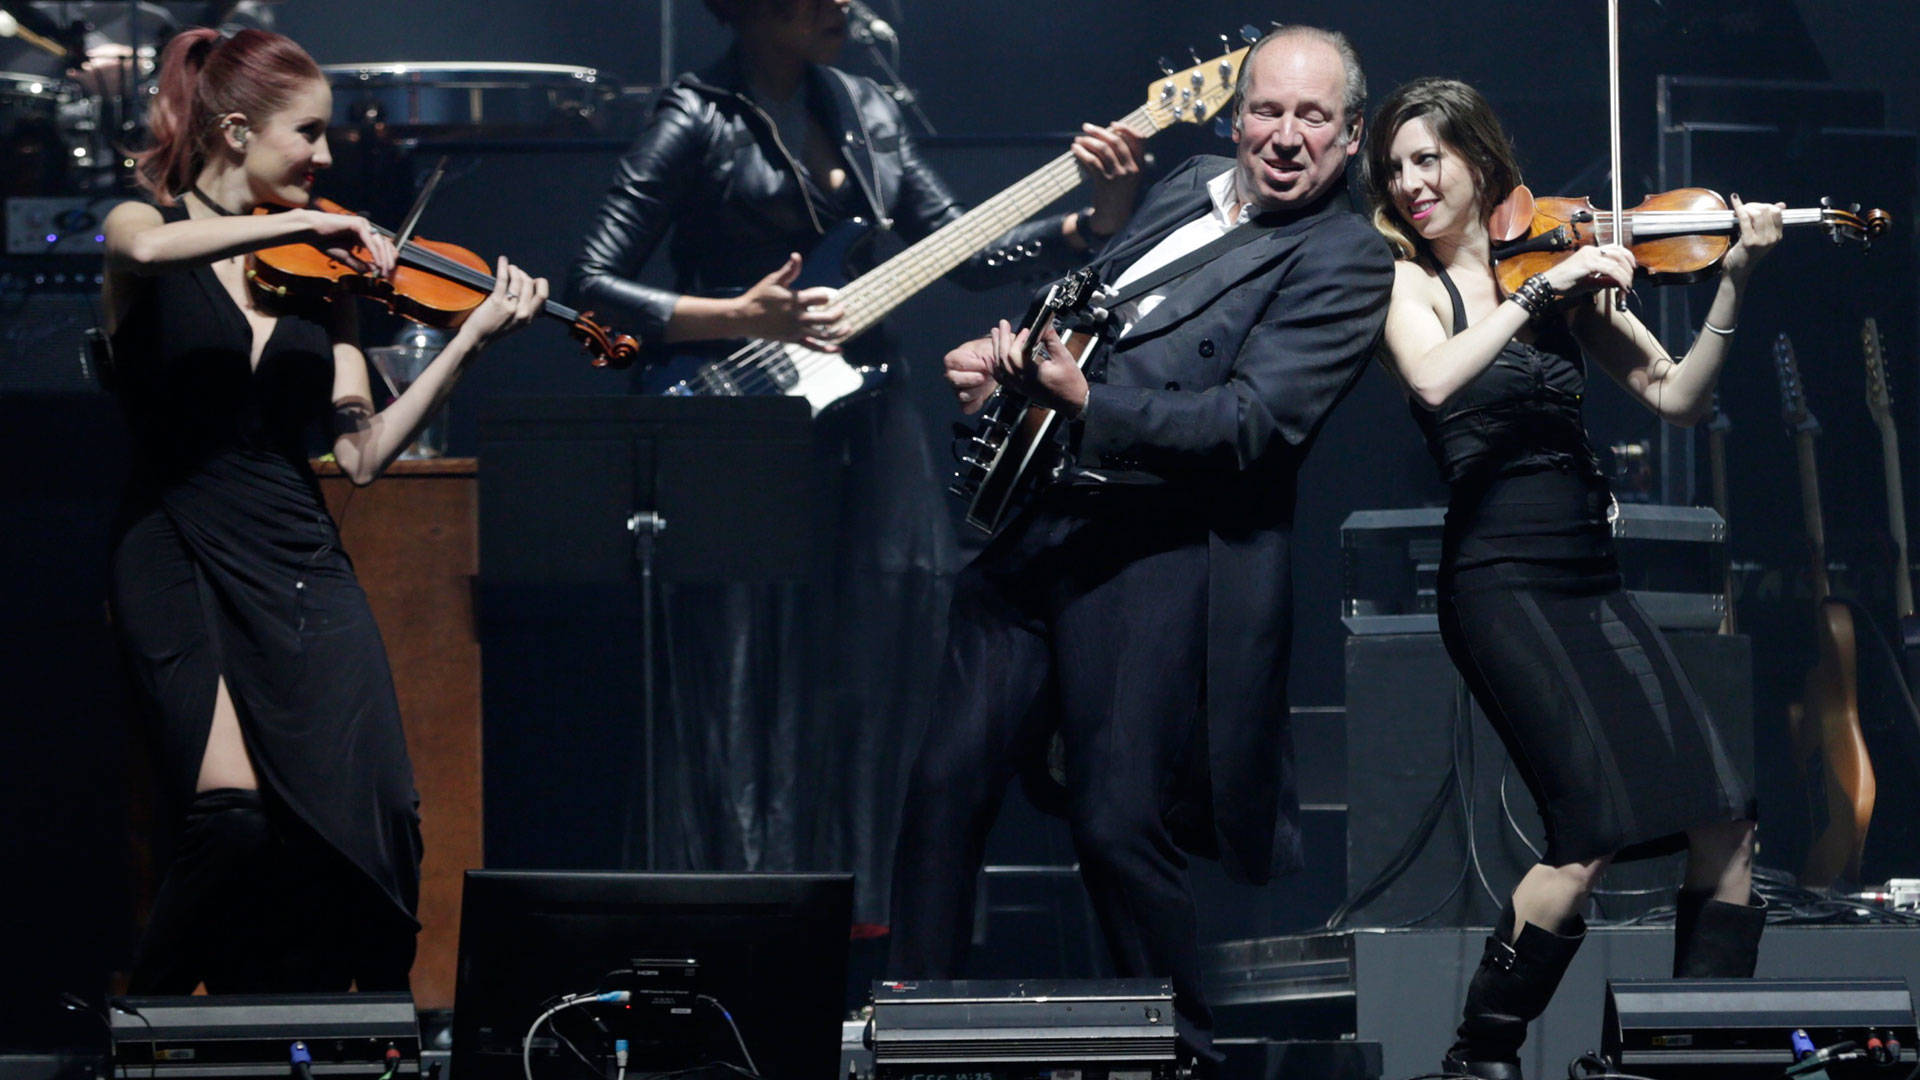 Hans Zimmer, on banjo, performs with members of his band at the Bill Graham Civic Auditorium in San Francisco on April 19, 2017. Photo: Gabe Meline/KQED